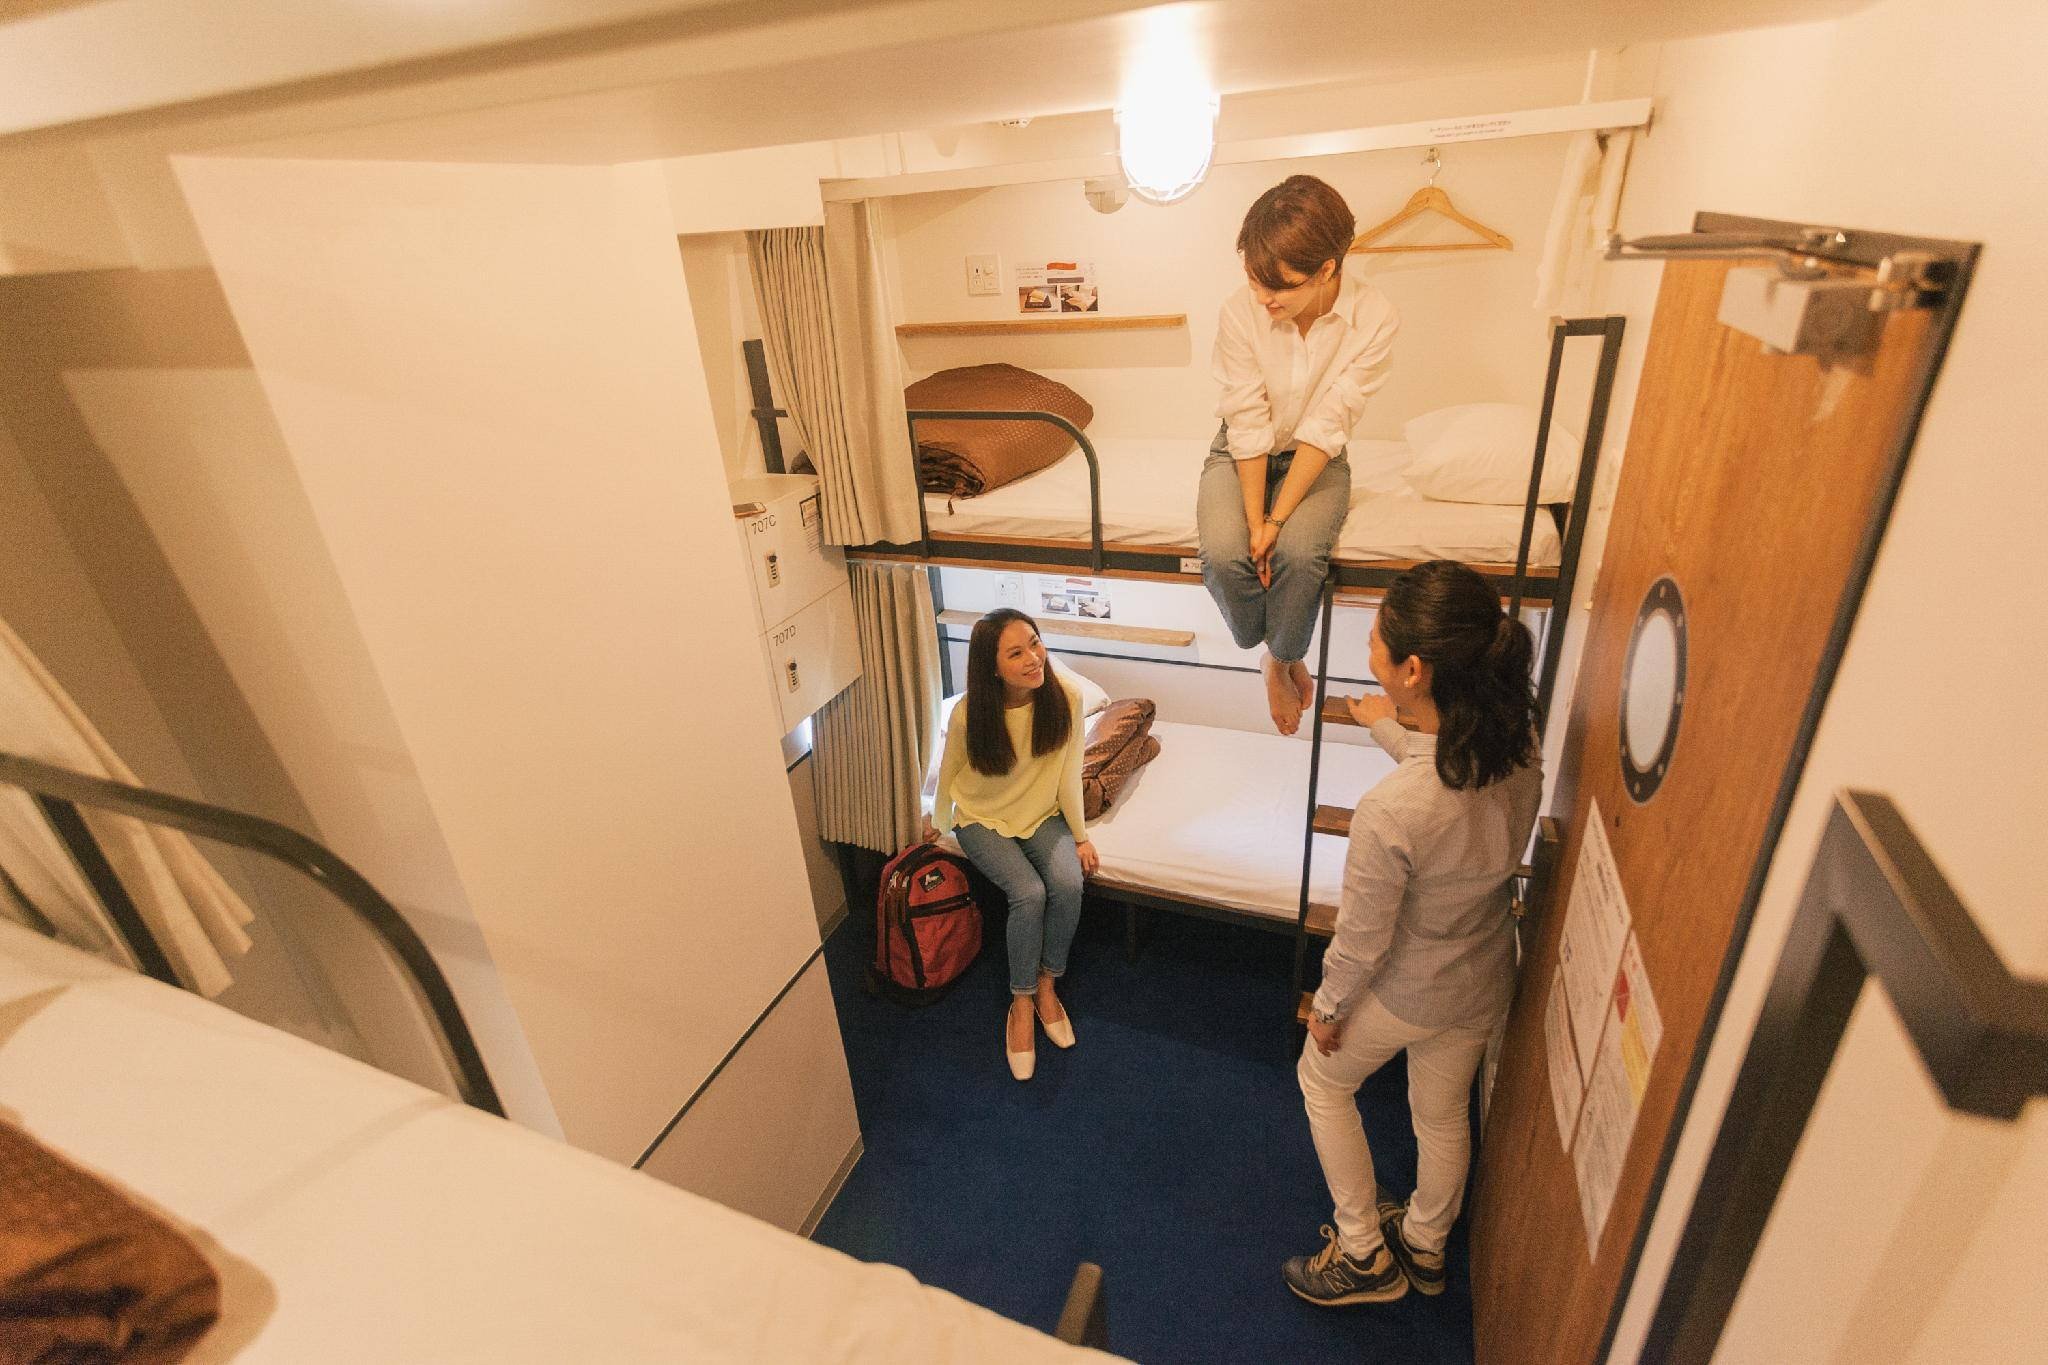 Privat rom for 3 personer med 2 køyesenger (Private Room for 3 People with 2 Bunk Beds)